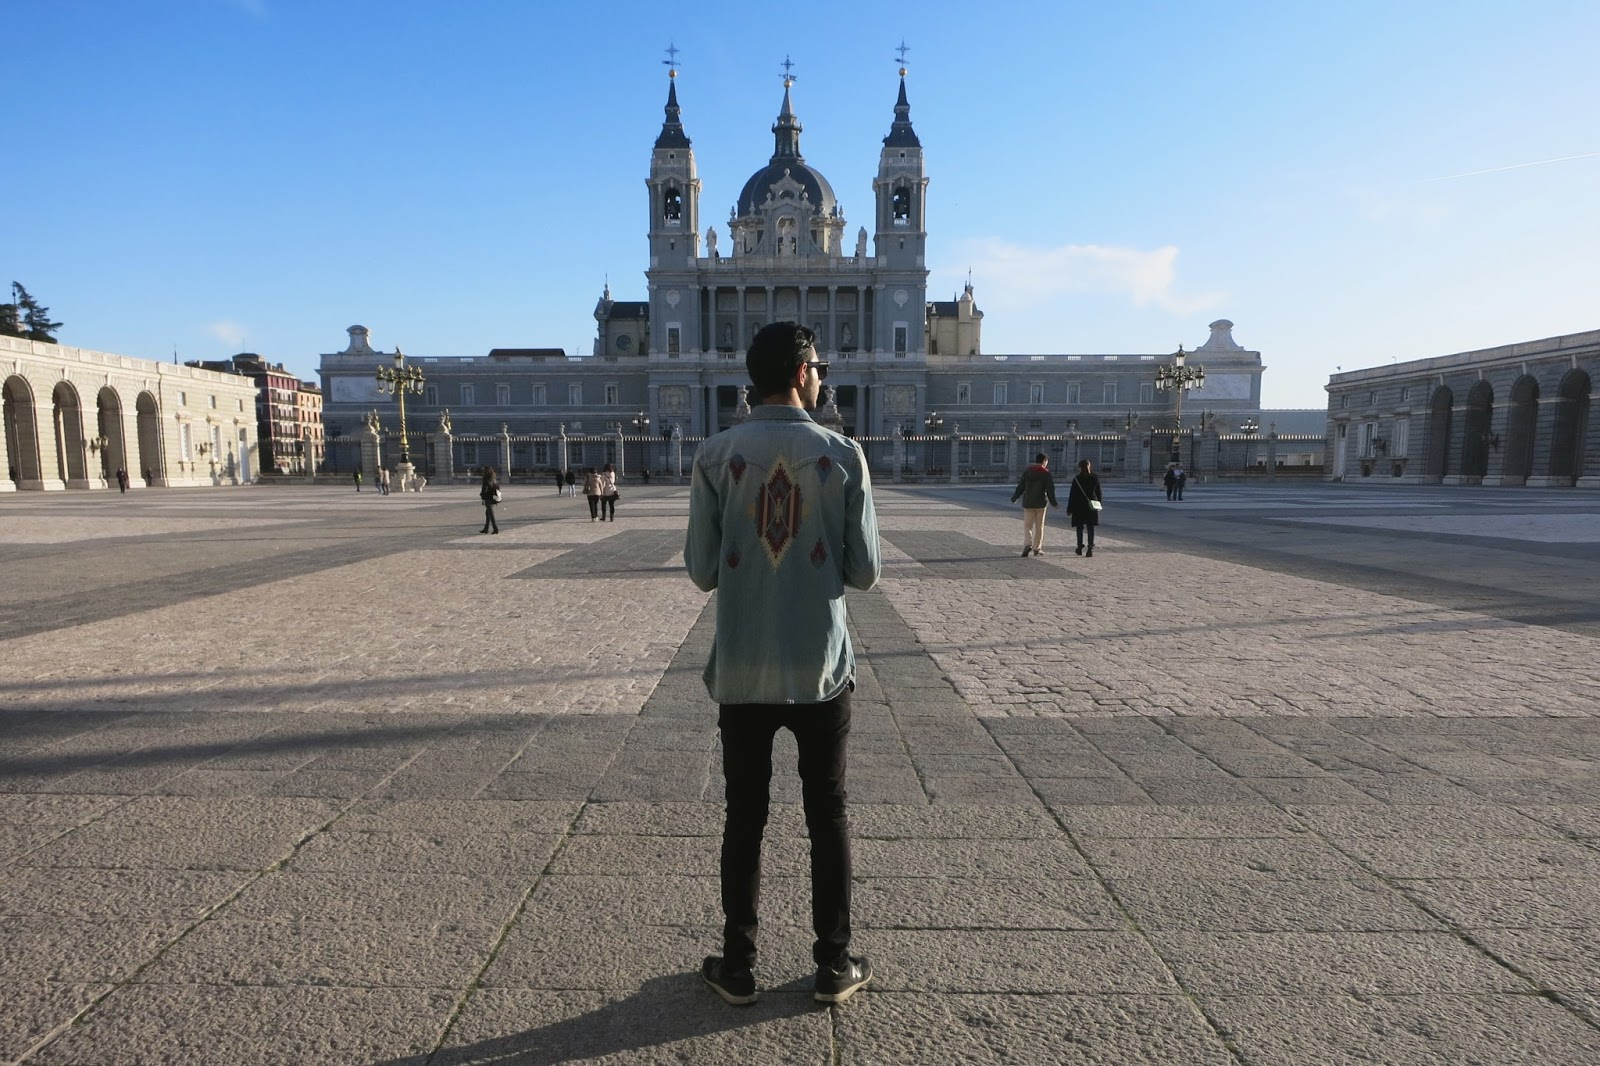 Salman Dean's Photo Diary of The Royal Palace of Madrid